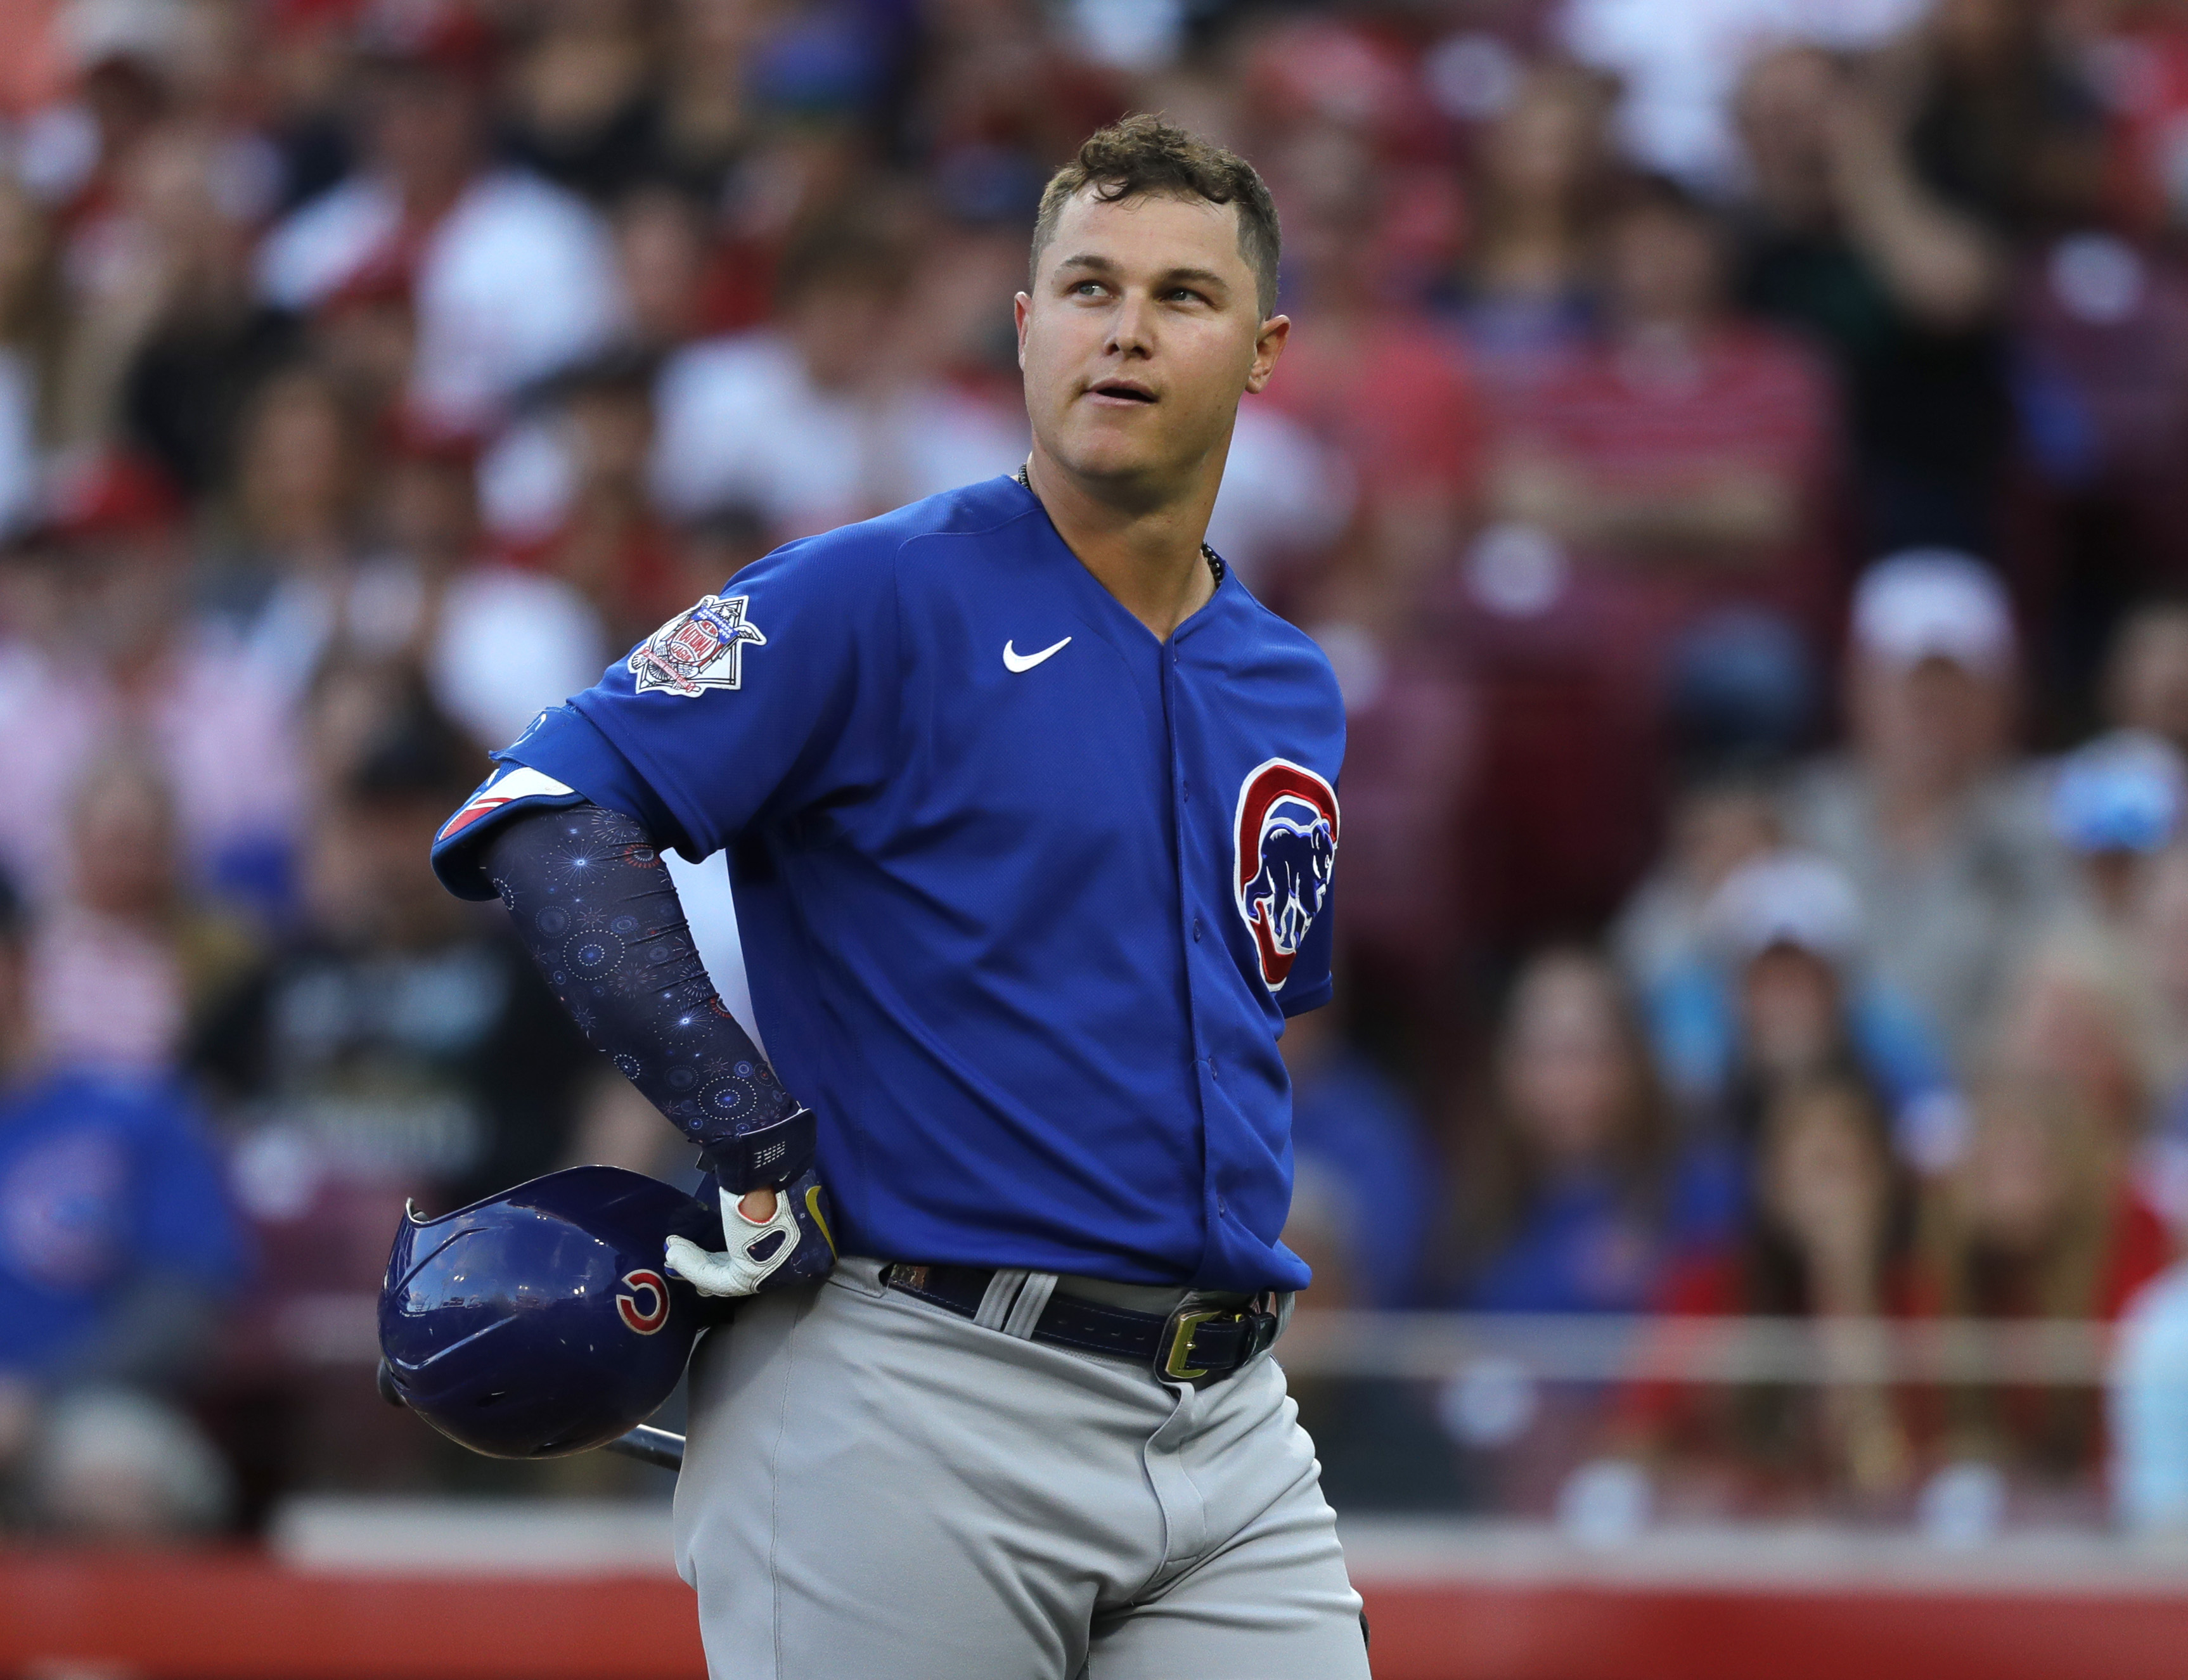 Cubs trade outfielder Joe Pederson to the Braves